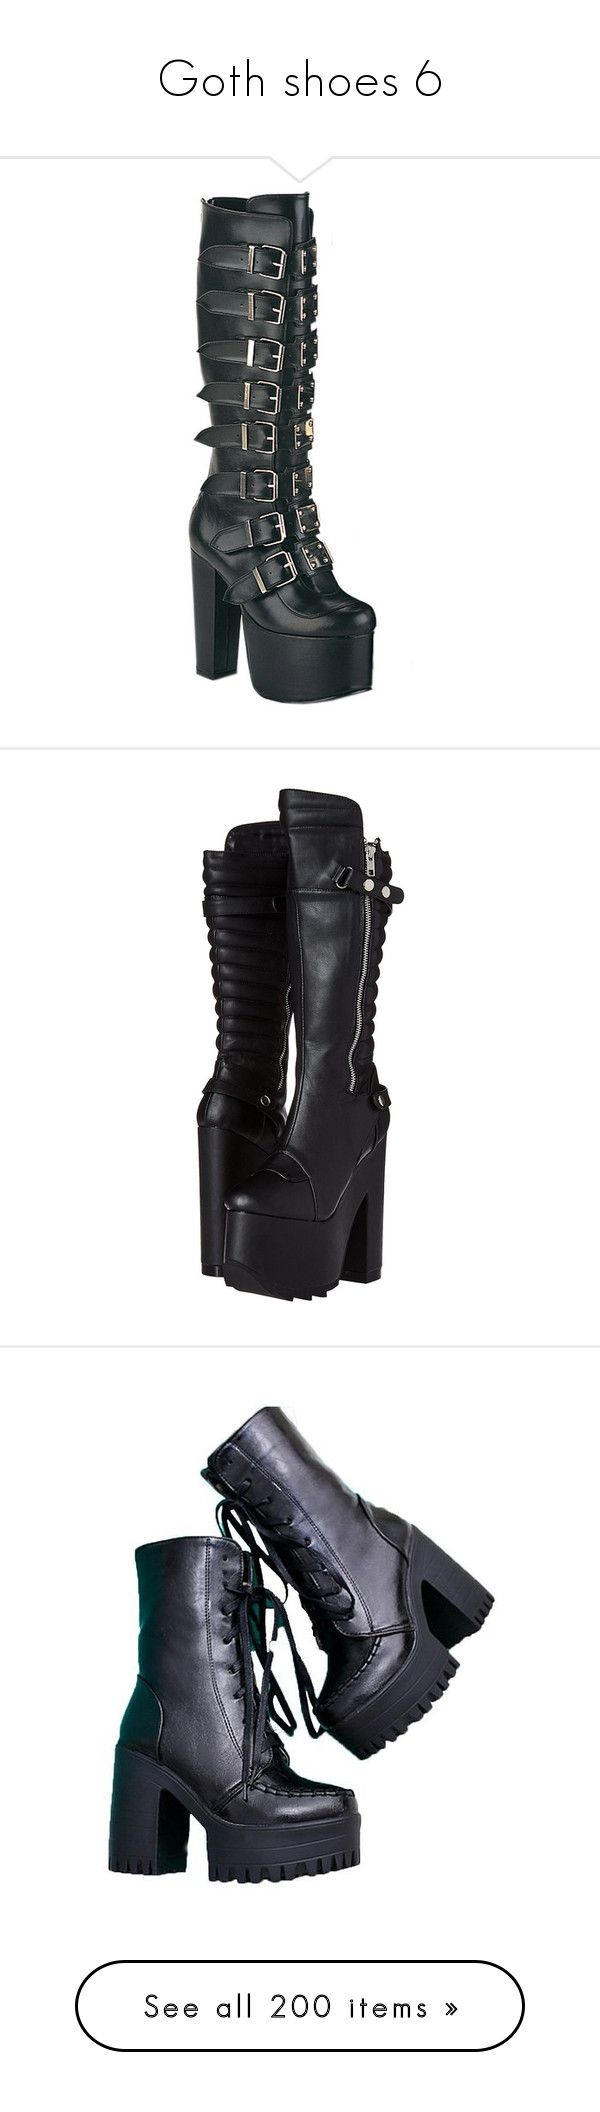 """""""Goth shoes 6"""" by morbid-octobur ❤ liked on Polyvore featuring shoes, boots, heels, heeled boots, buckle boots, leather buckle boots, wide width shoes, demonia, knee-length boots and knee-high boots"""